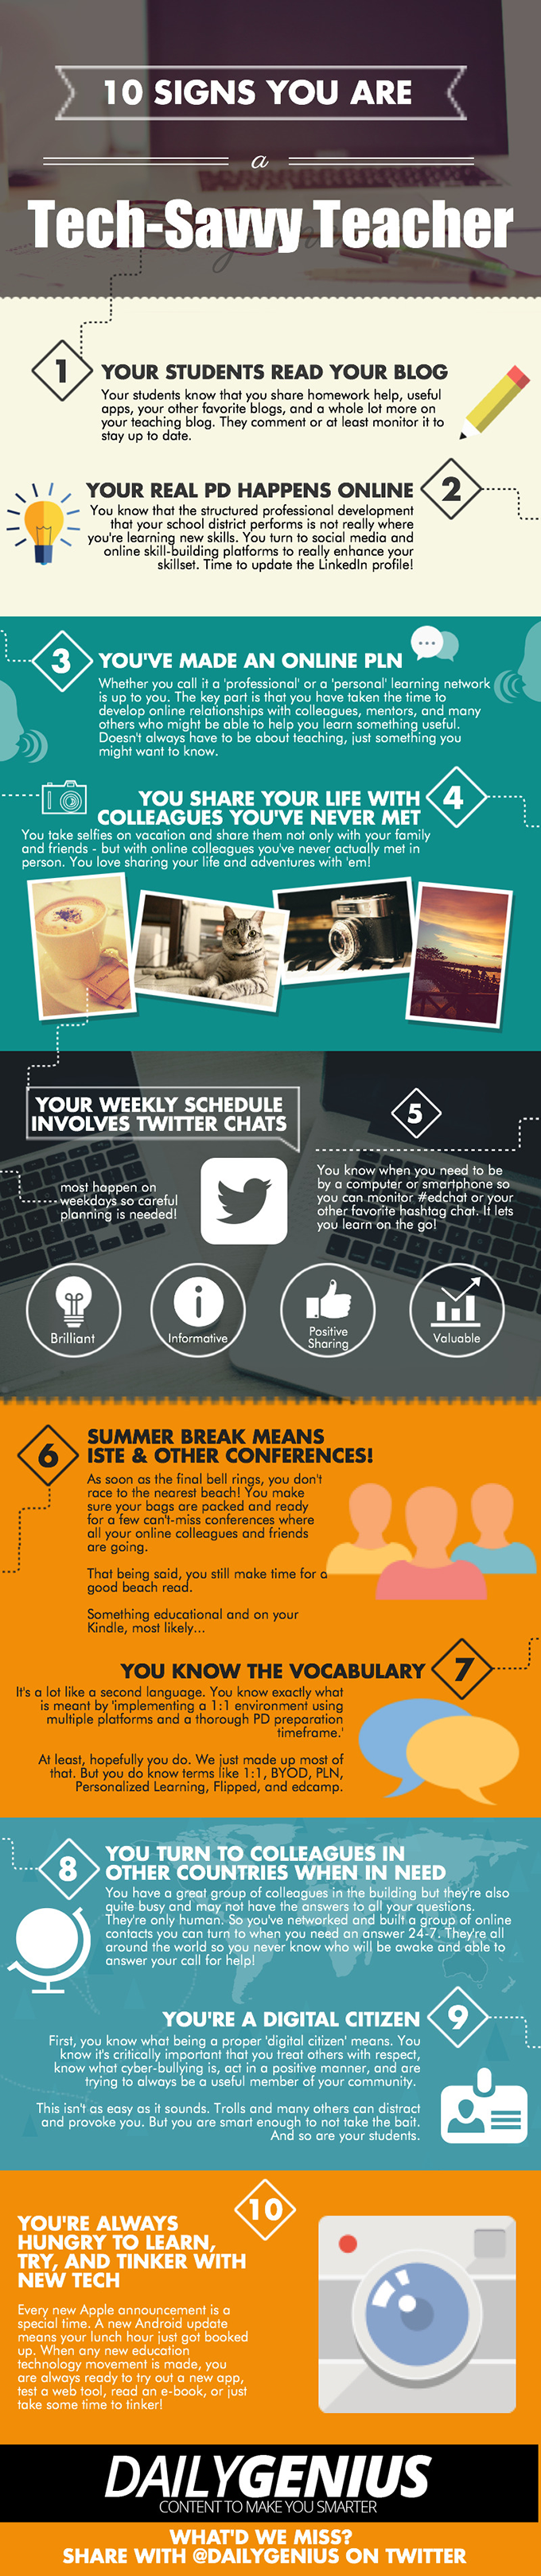 Ed-Tech-Infogrpahic-Tech-Savvy-Teachers